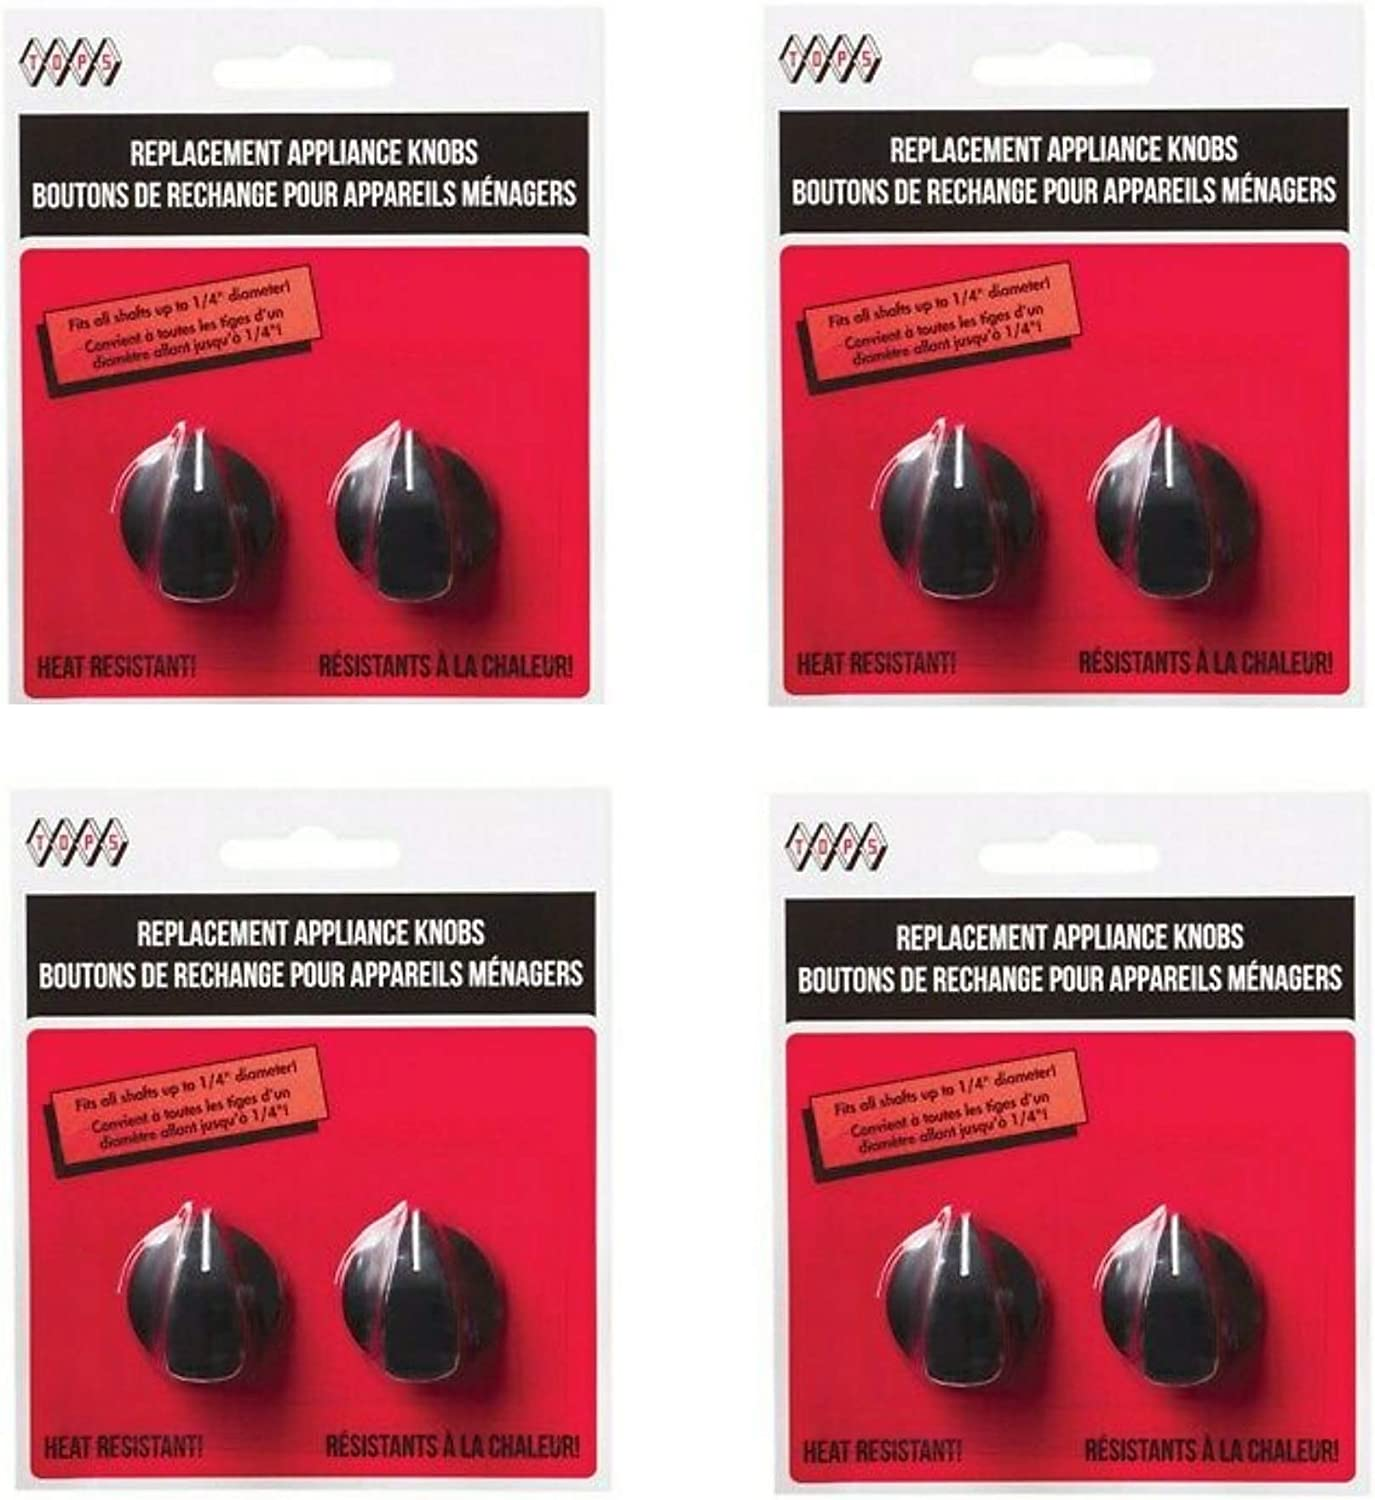 Tops 55713 Fitz-All Replacement Appliance Knobs, Set of 2, 4 Pack